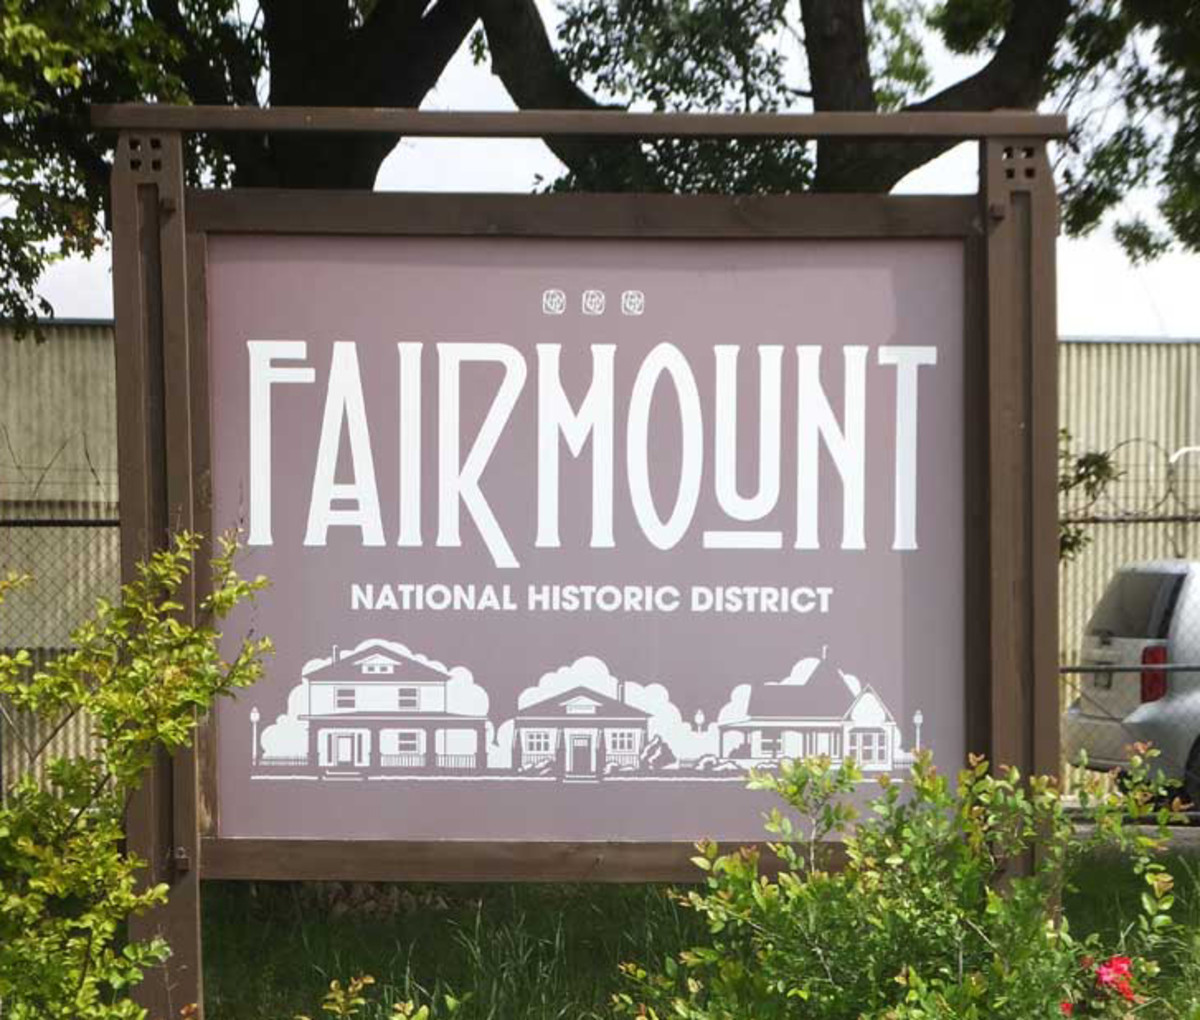 Fairmount National Historic District